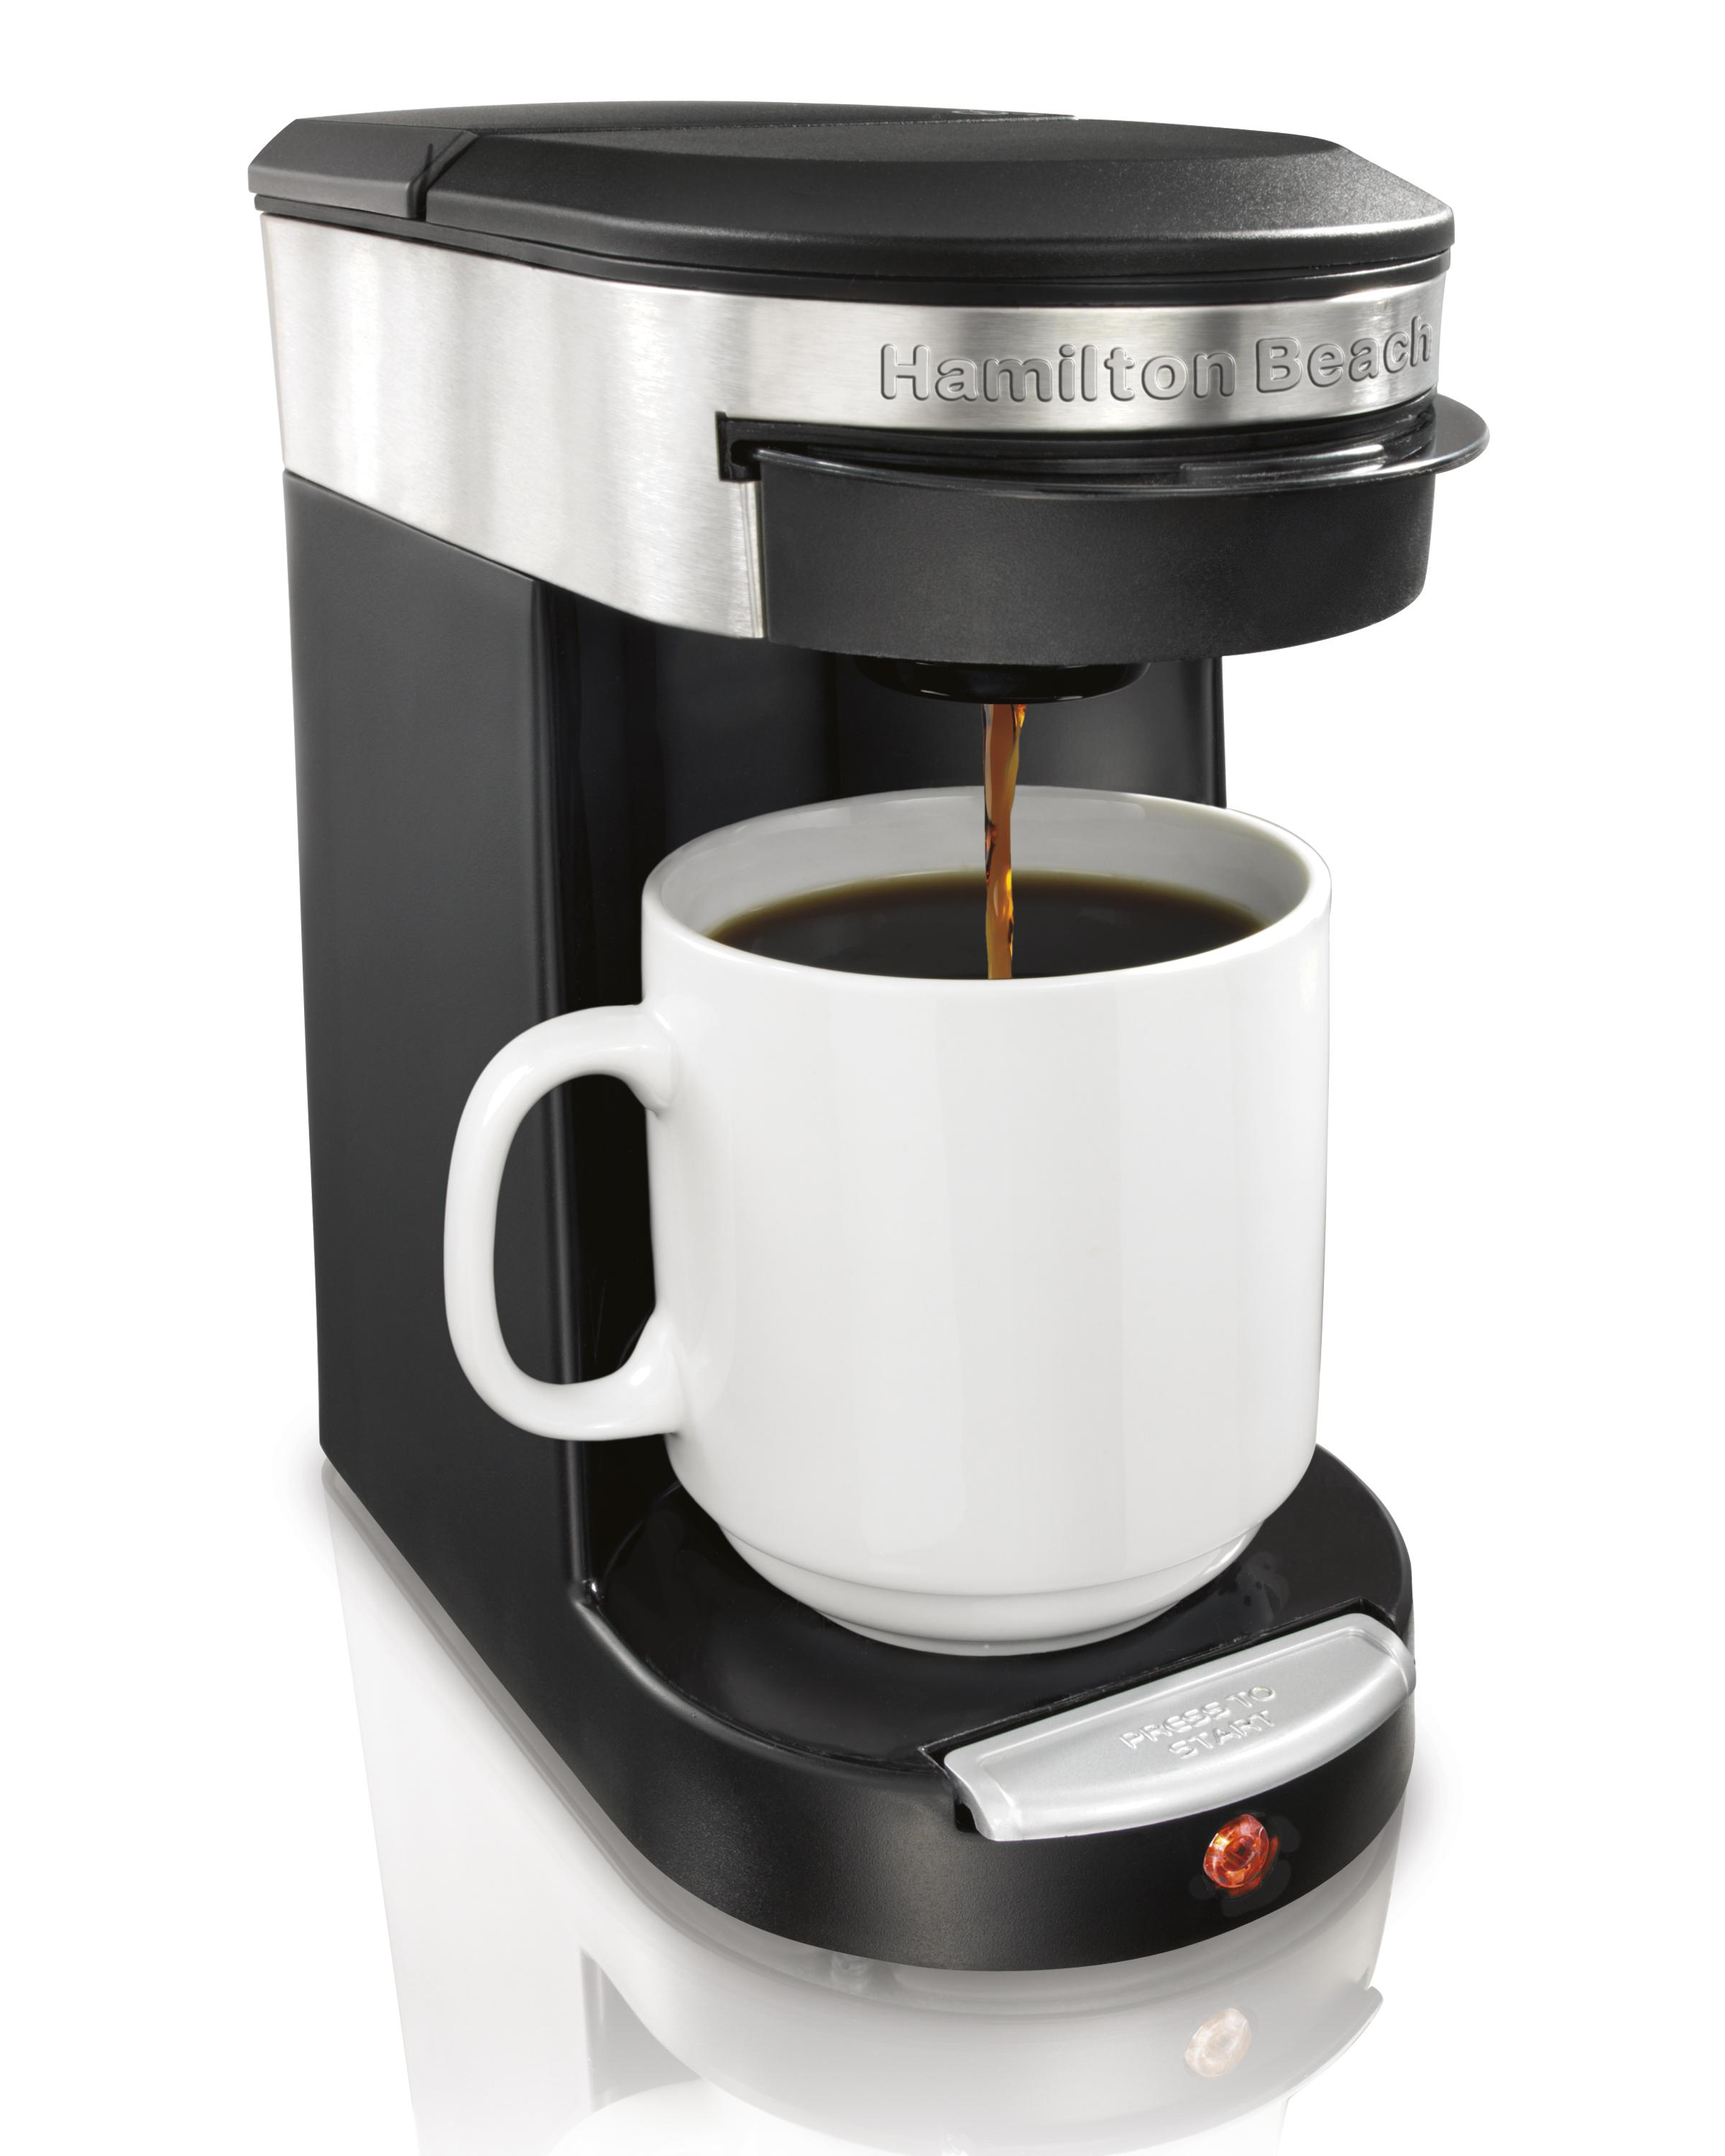 Electronic Keurig Coffee Machine Price single serve brewers amazon com hamilton beach 49970 personal cup one pod brewer